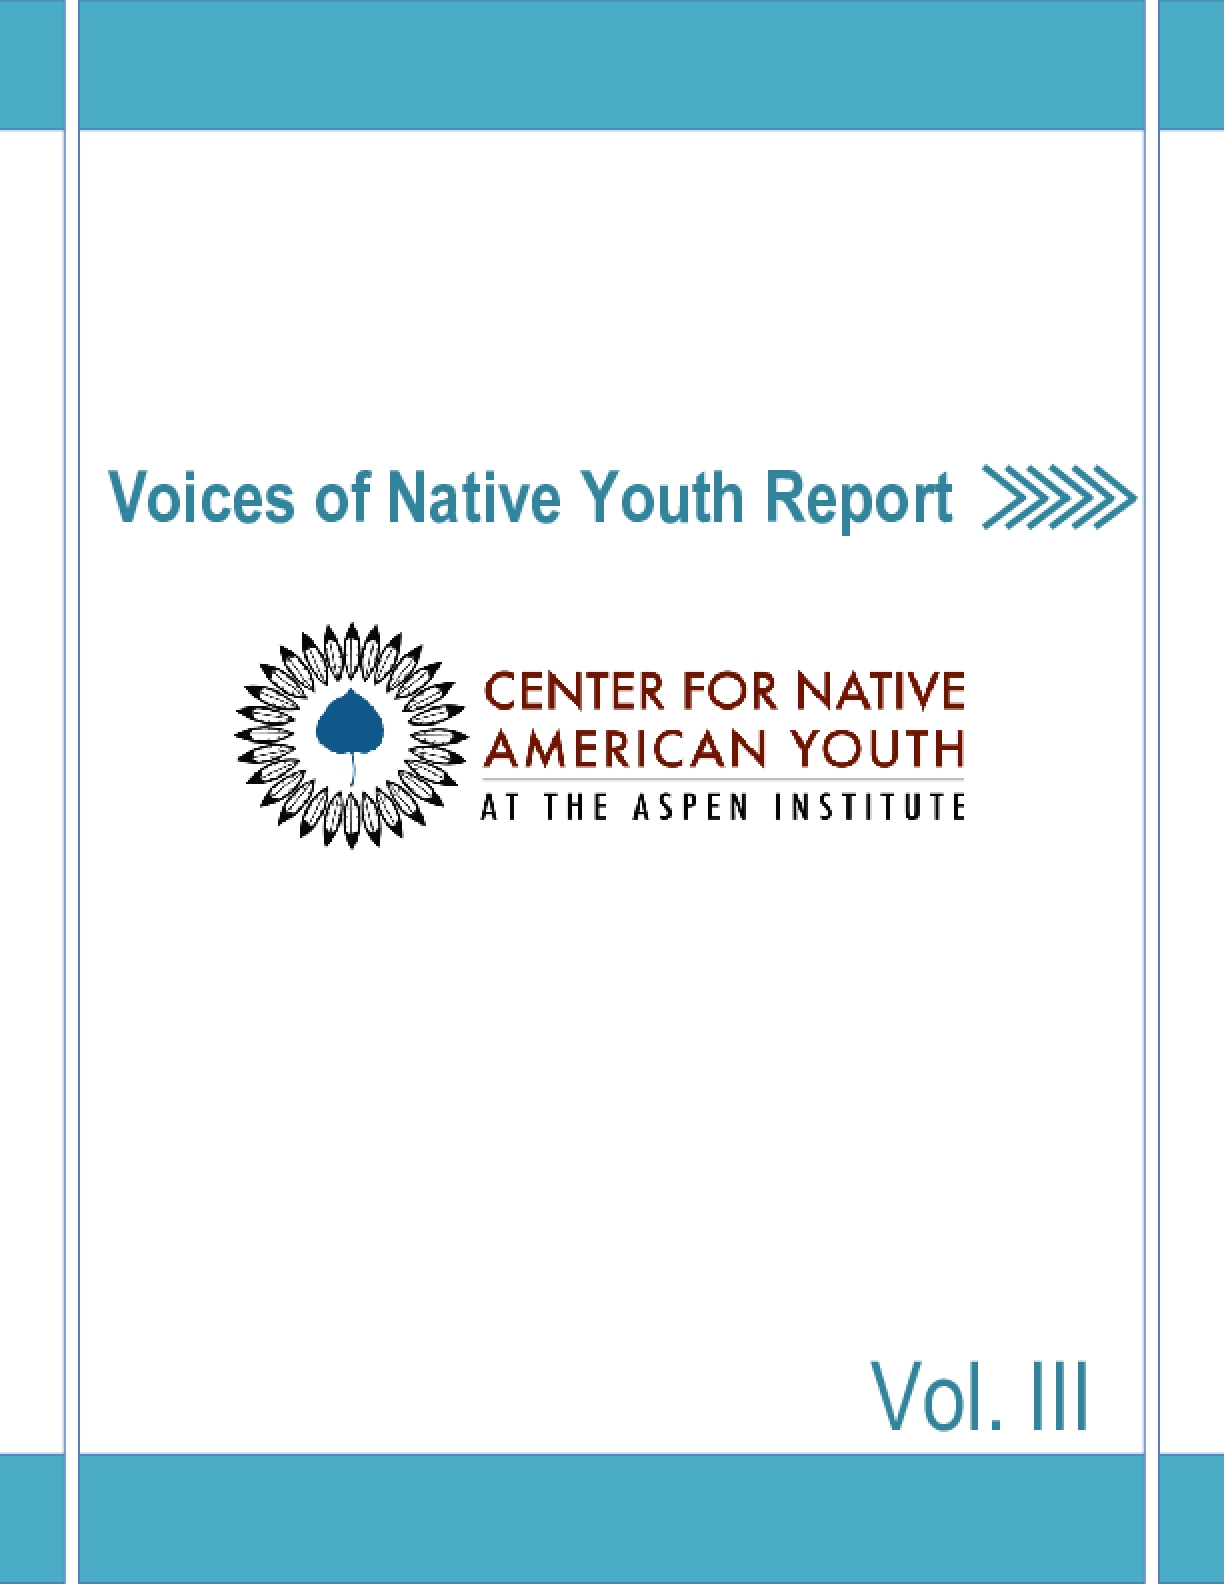 Voices of Native Youth Report Volume 3